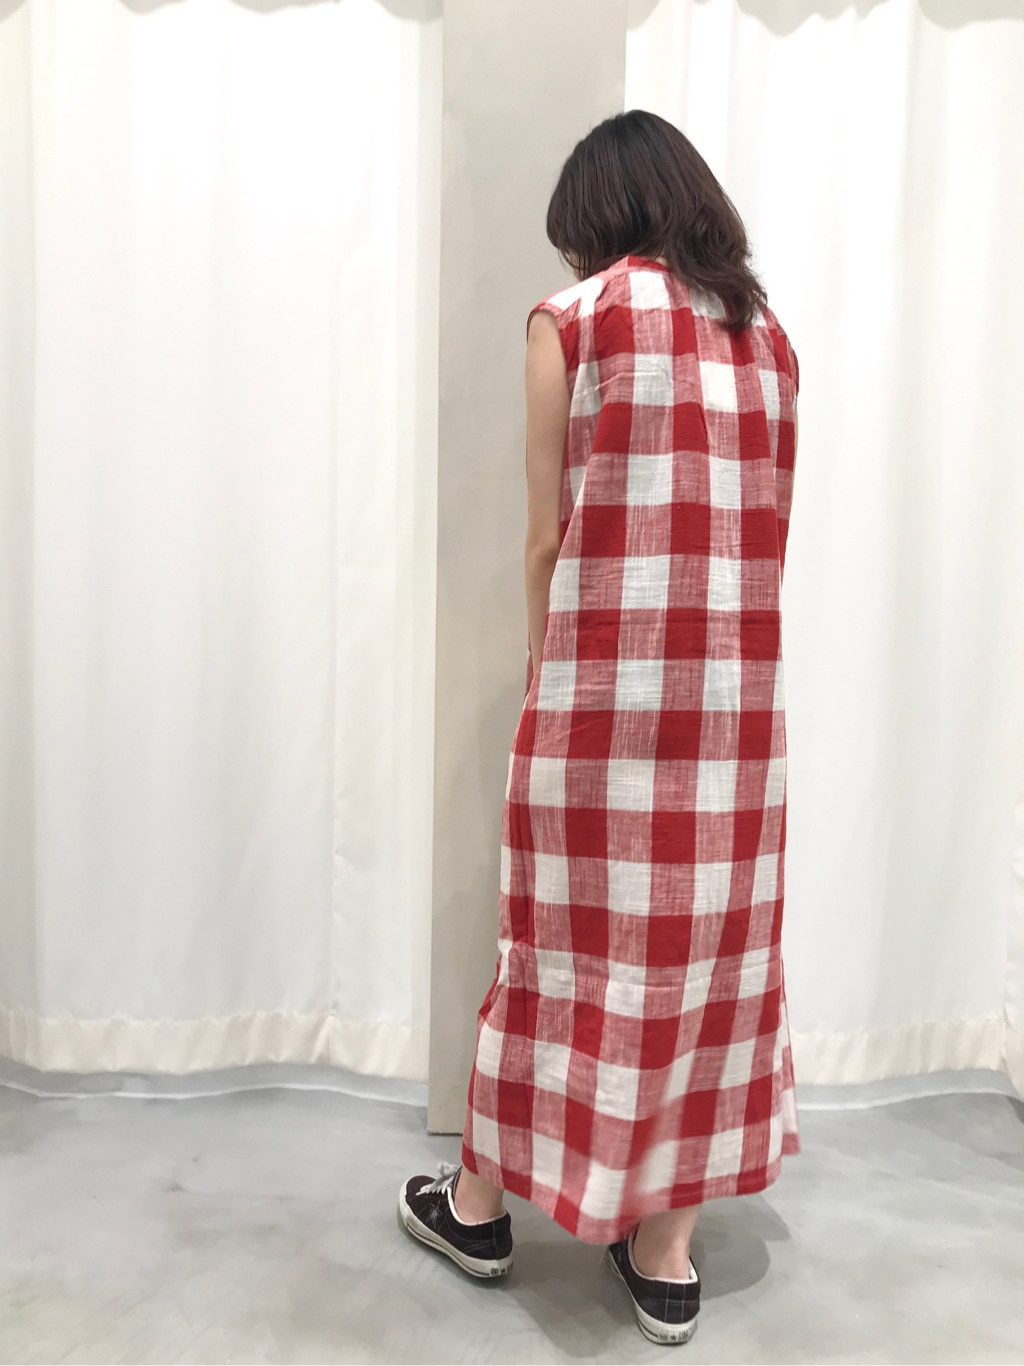 AMB SHOP PAR ICI CHILD WOMAN,PAR ICI ルミネ横浜 身長:154cm 2020.05.28